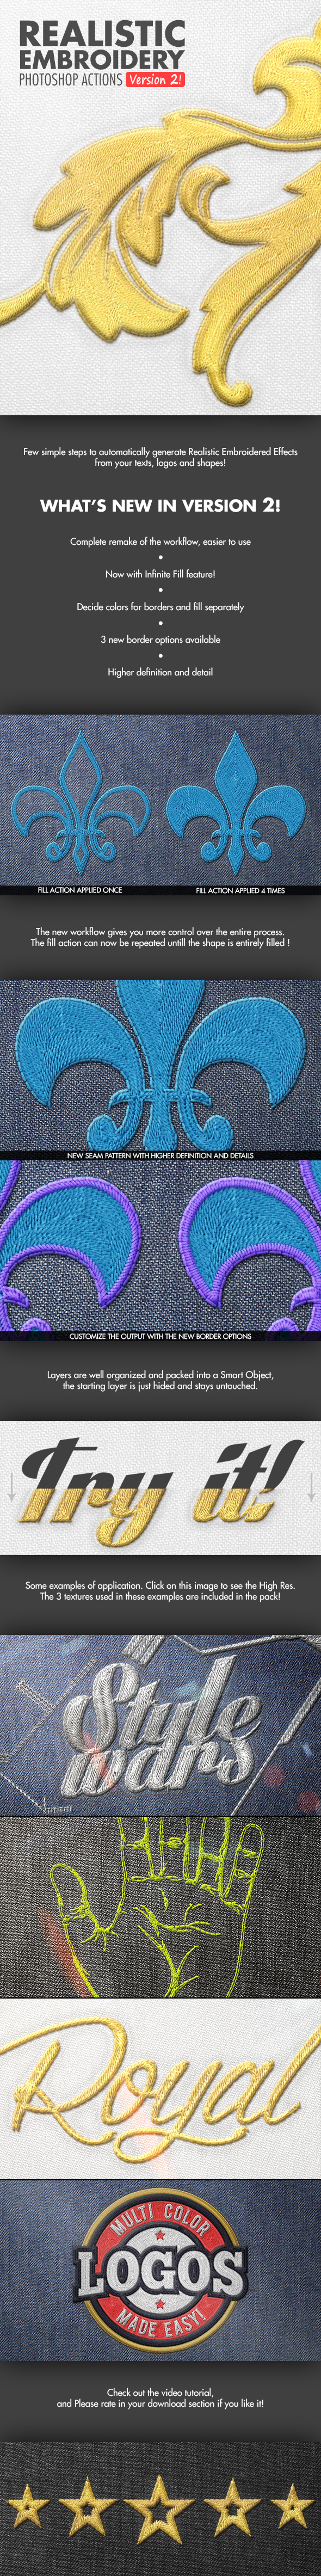 Realistic Embroidery - Photoshop Actions - Utilities Actions